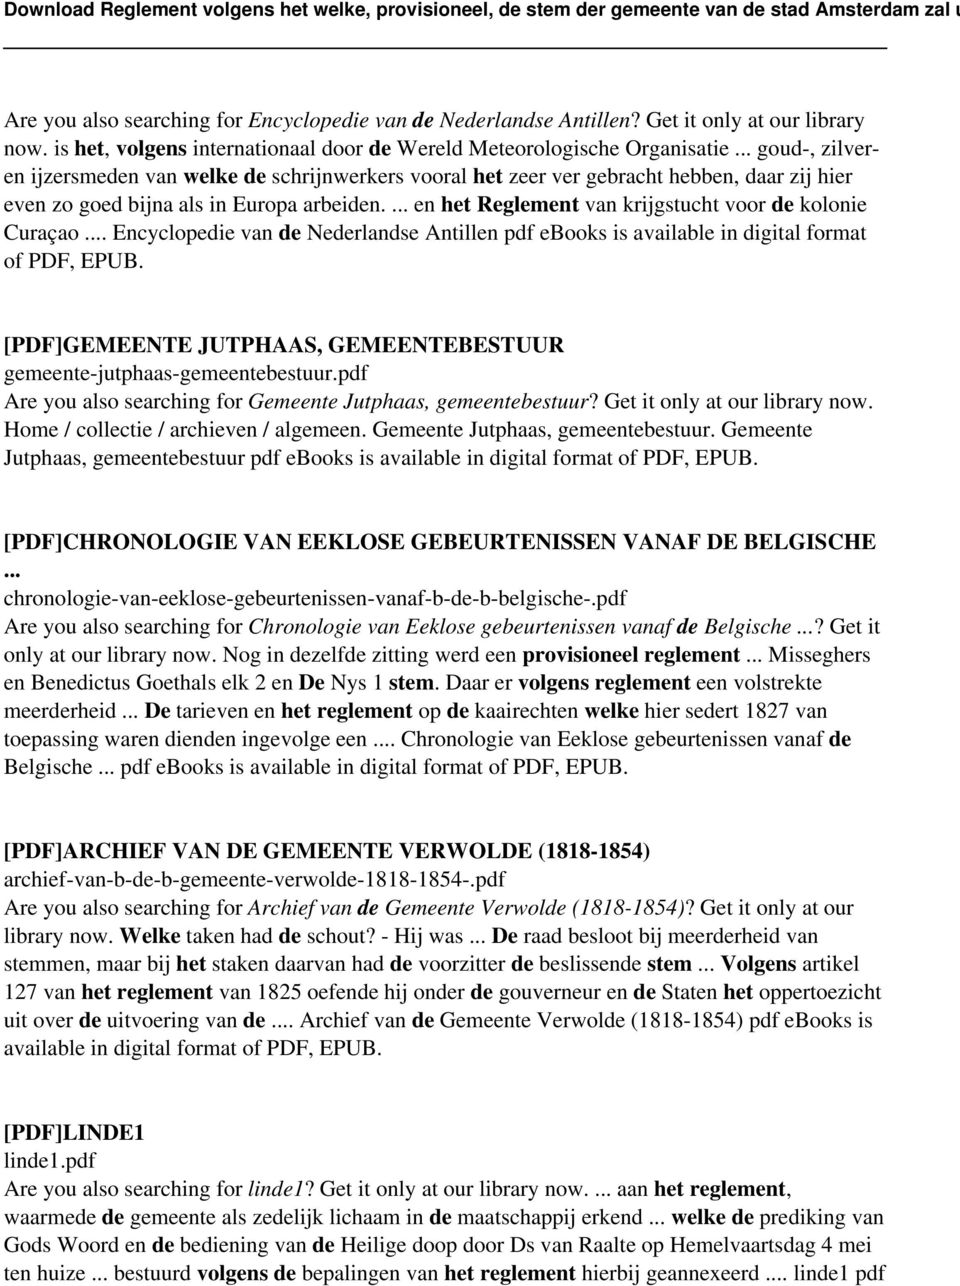 ... en het Reglement van krijgstucht voor de kolonie Curaçao... Encyclopedie van de Nederlandse Antillen pdf ebooks is available in digital format of PDF, EPUB.